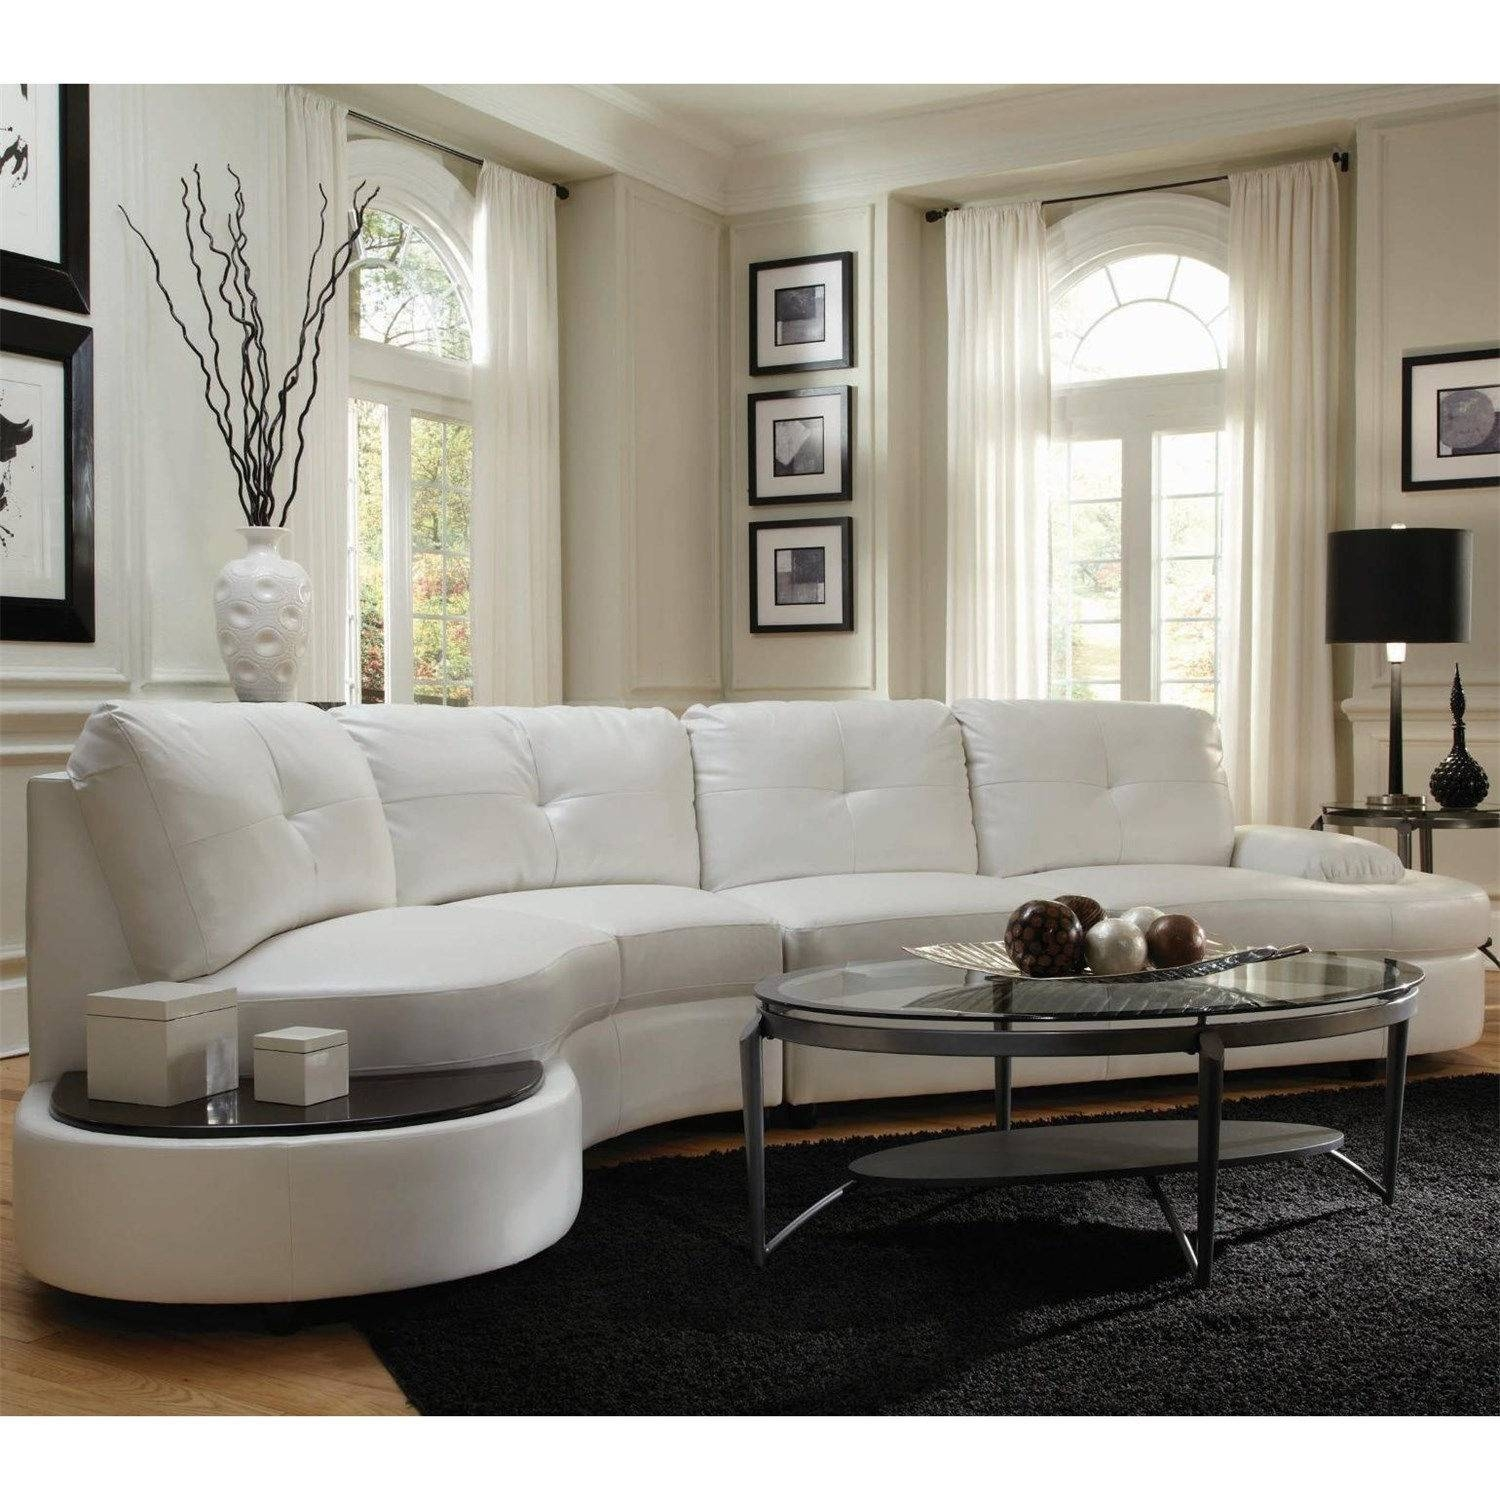 Conversation Sofa Sectional – Artenzo Within Conversation Sofa Sectional (View 13 of 30)